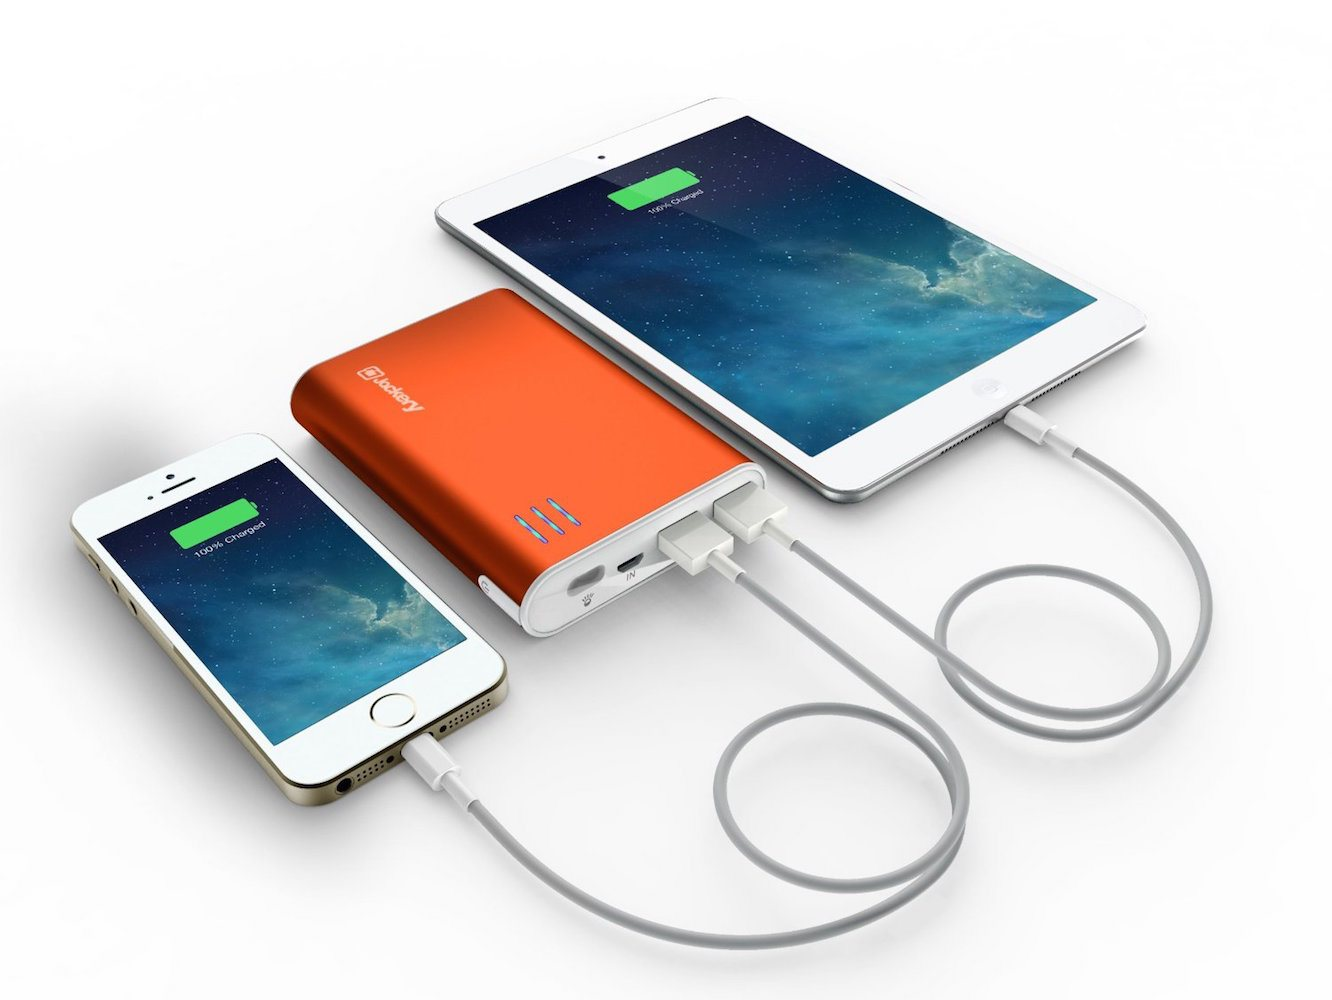 jackery giant 2 usb portable external battery charger gadget flow. Black Bedroom Furniture Sets. Home Design Ideas